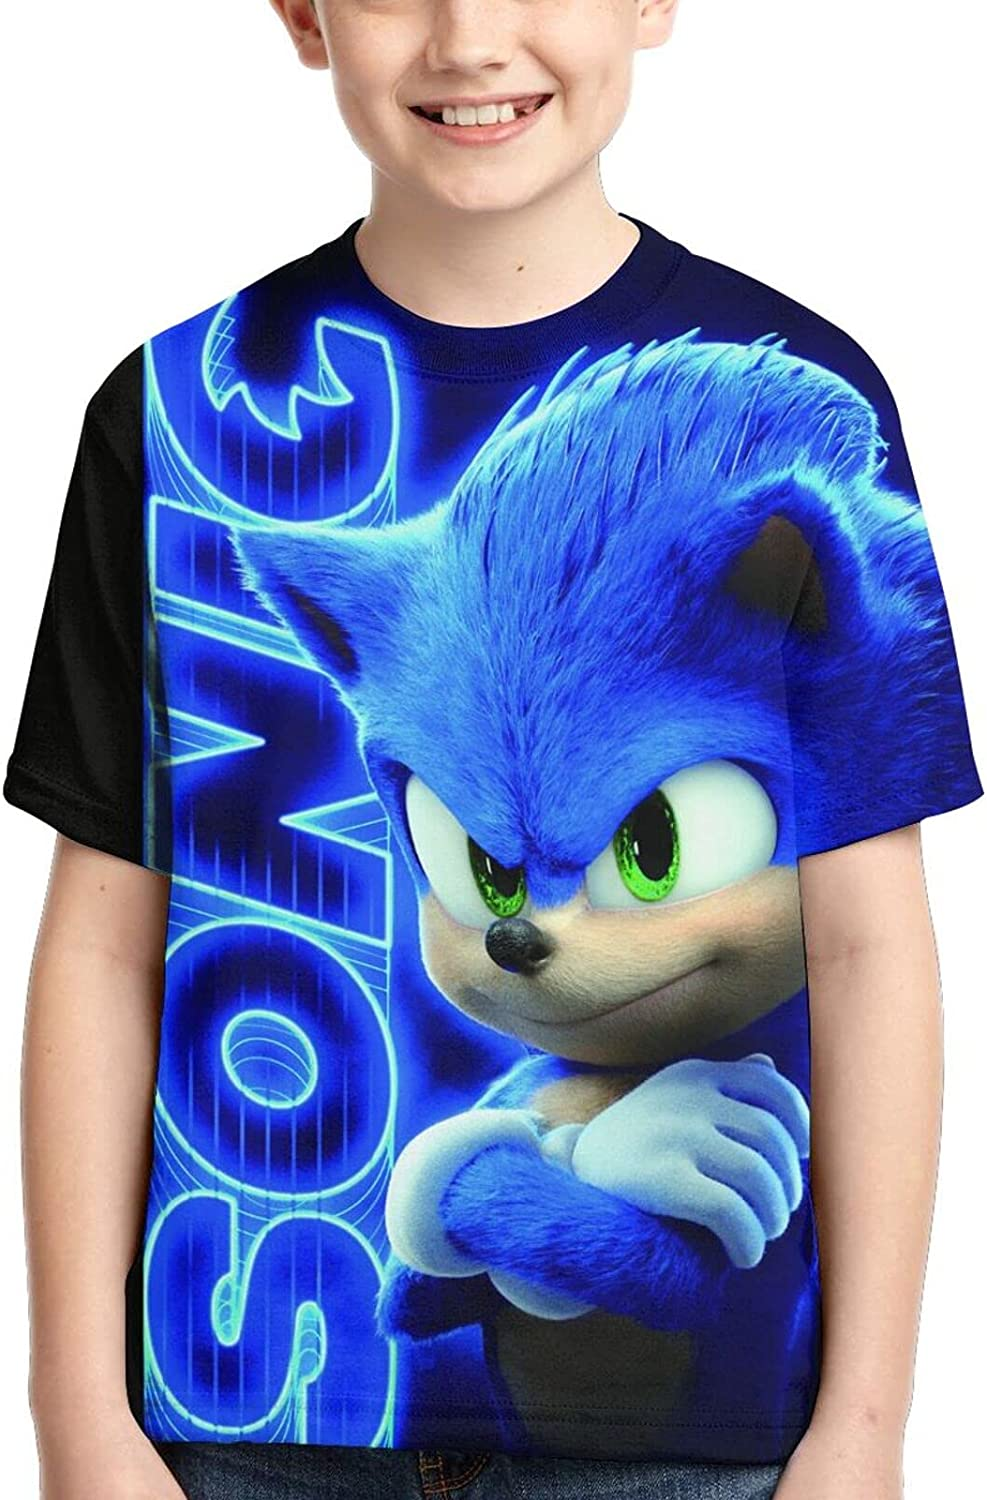 S-on-ic Youth Short Sleeve Top Kong 3D Printing T-Shirts for Teen Boys and Girls Children T-Shirts